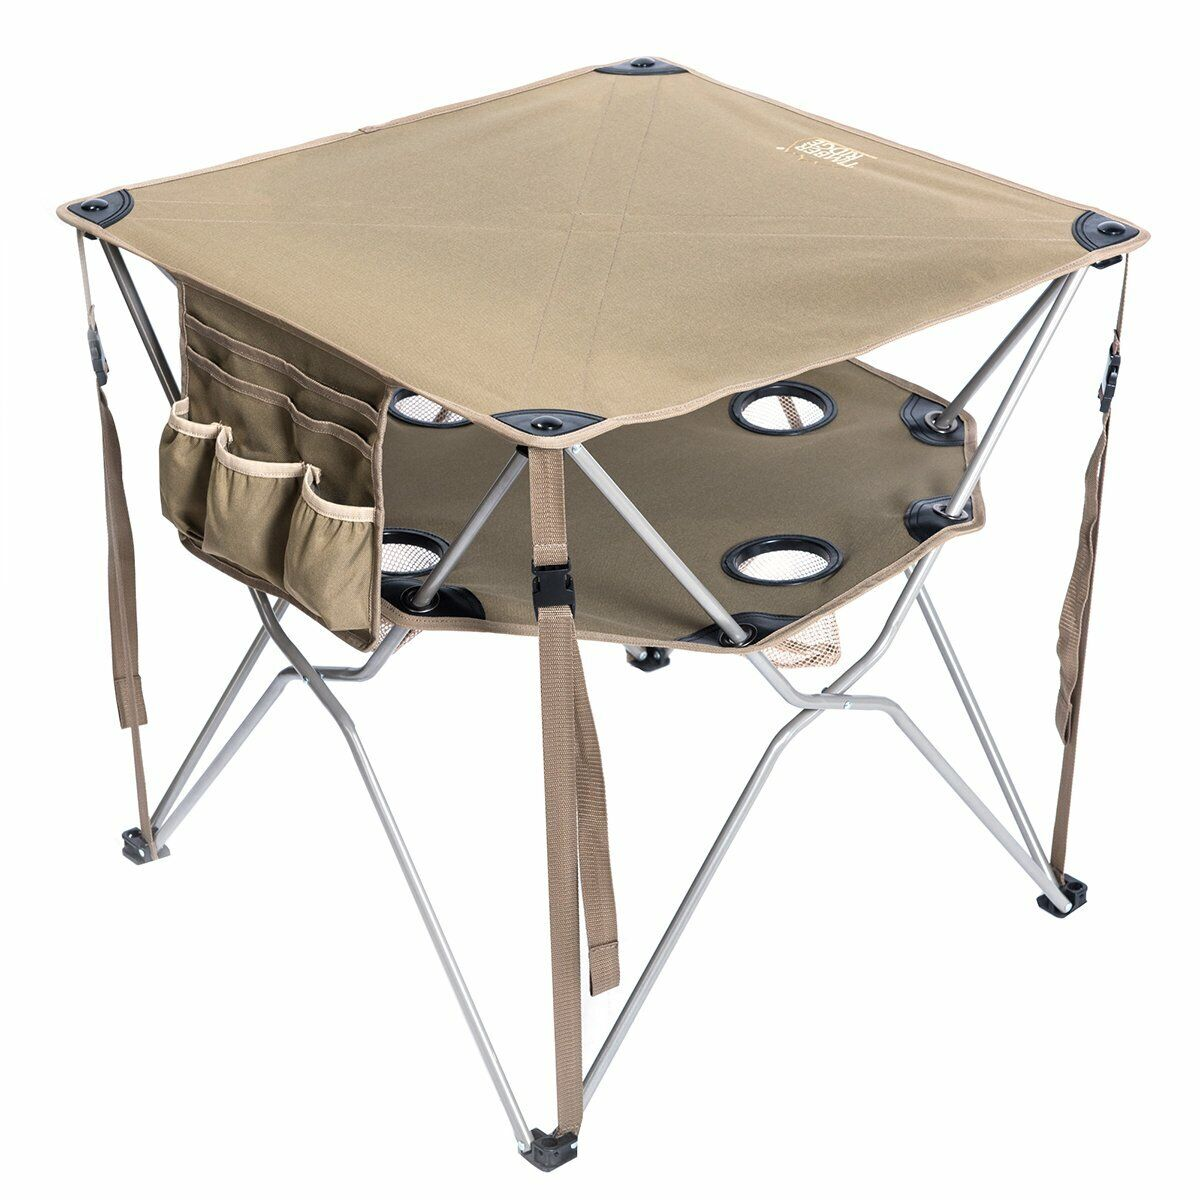 Timber Ridge Folding  Table Utility Outdoor Camping Lightweight Desk w  Carry Bag  sale online save 70%